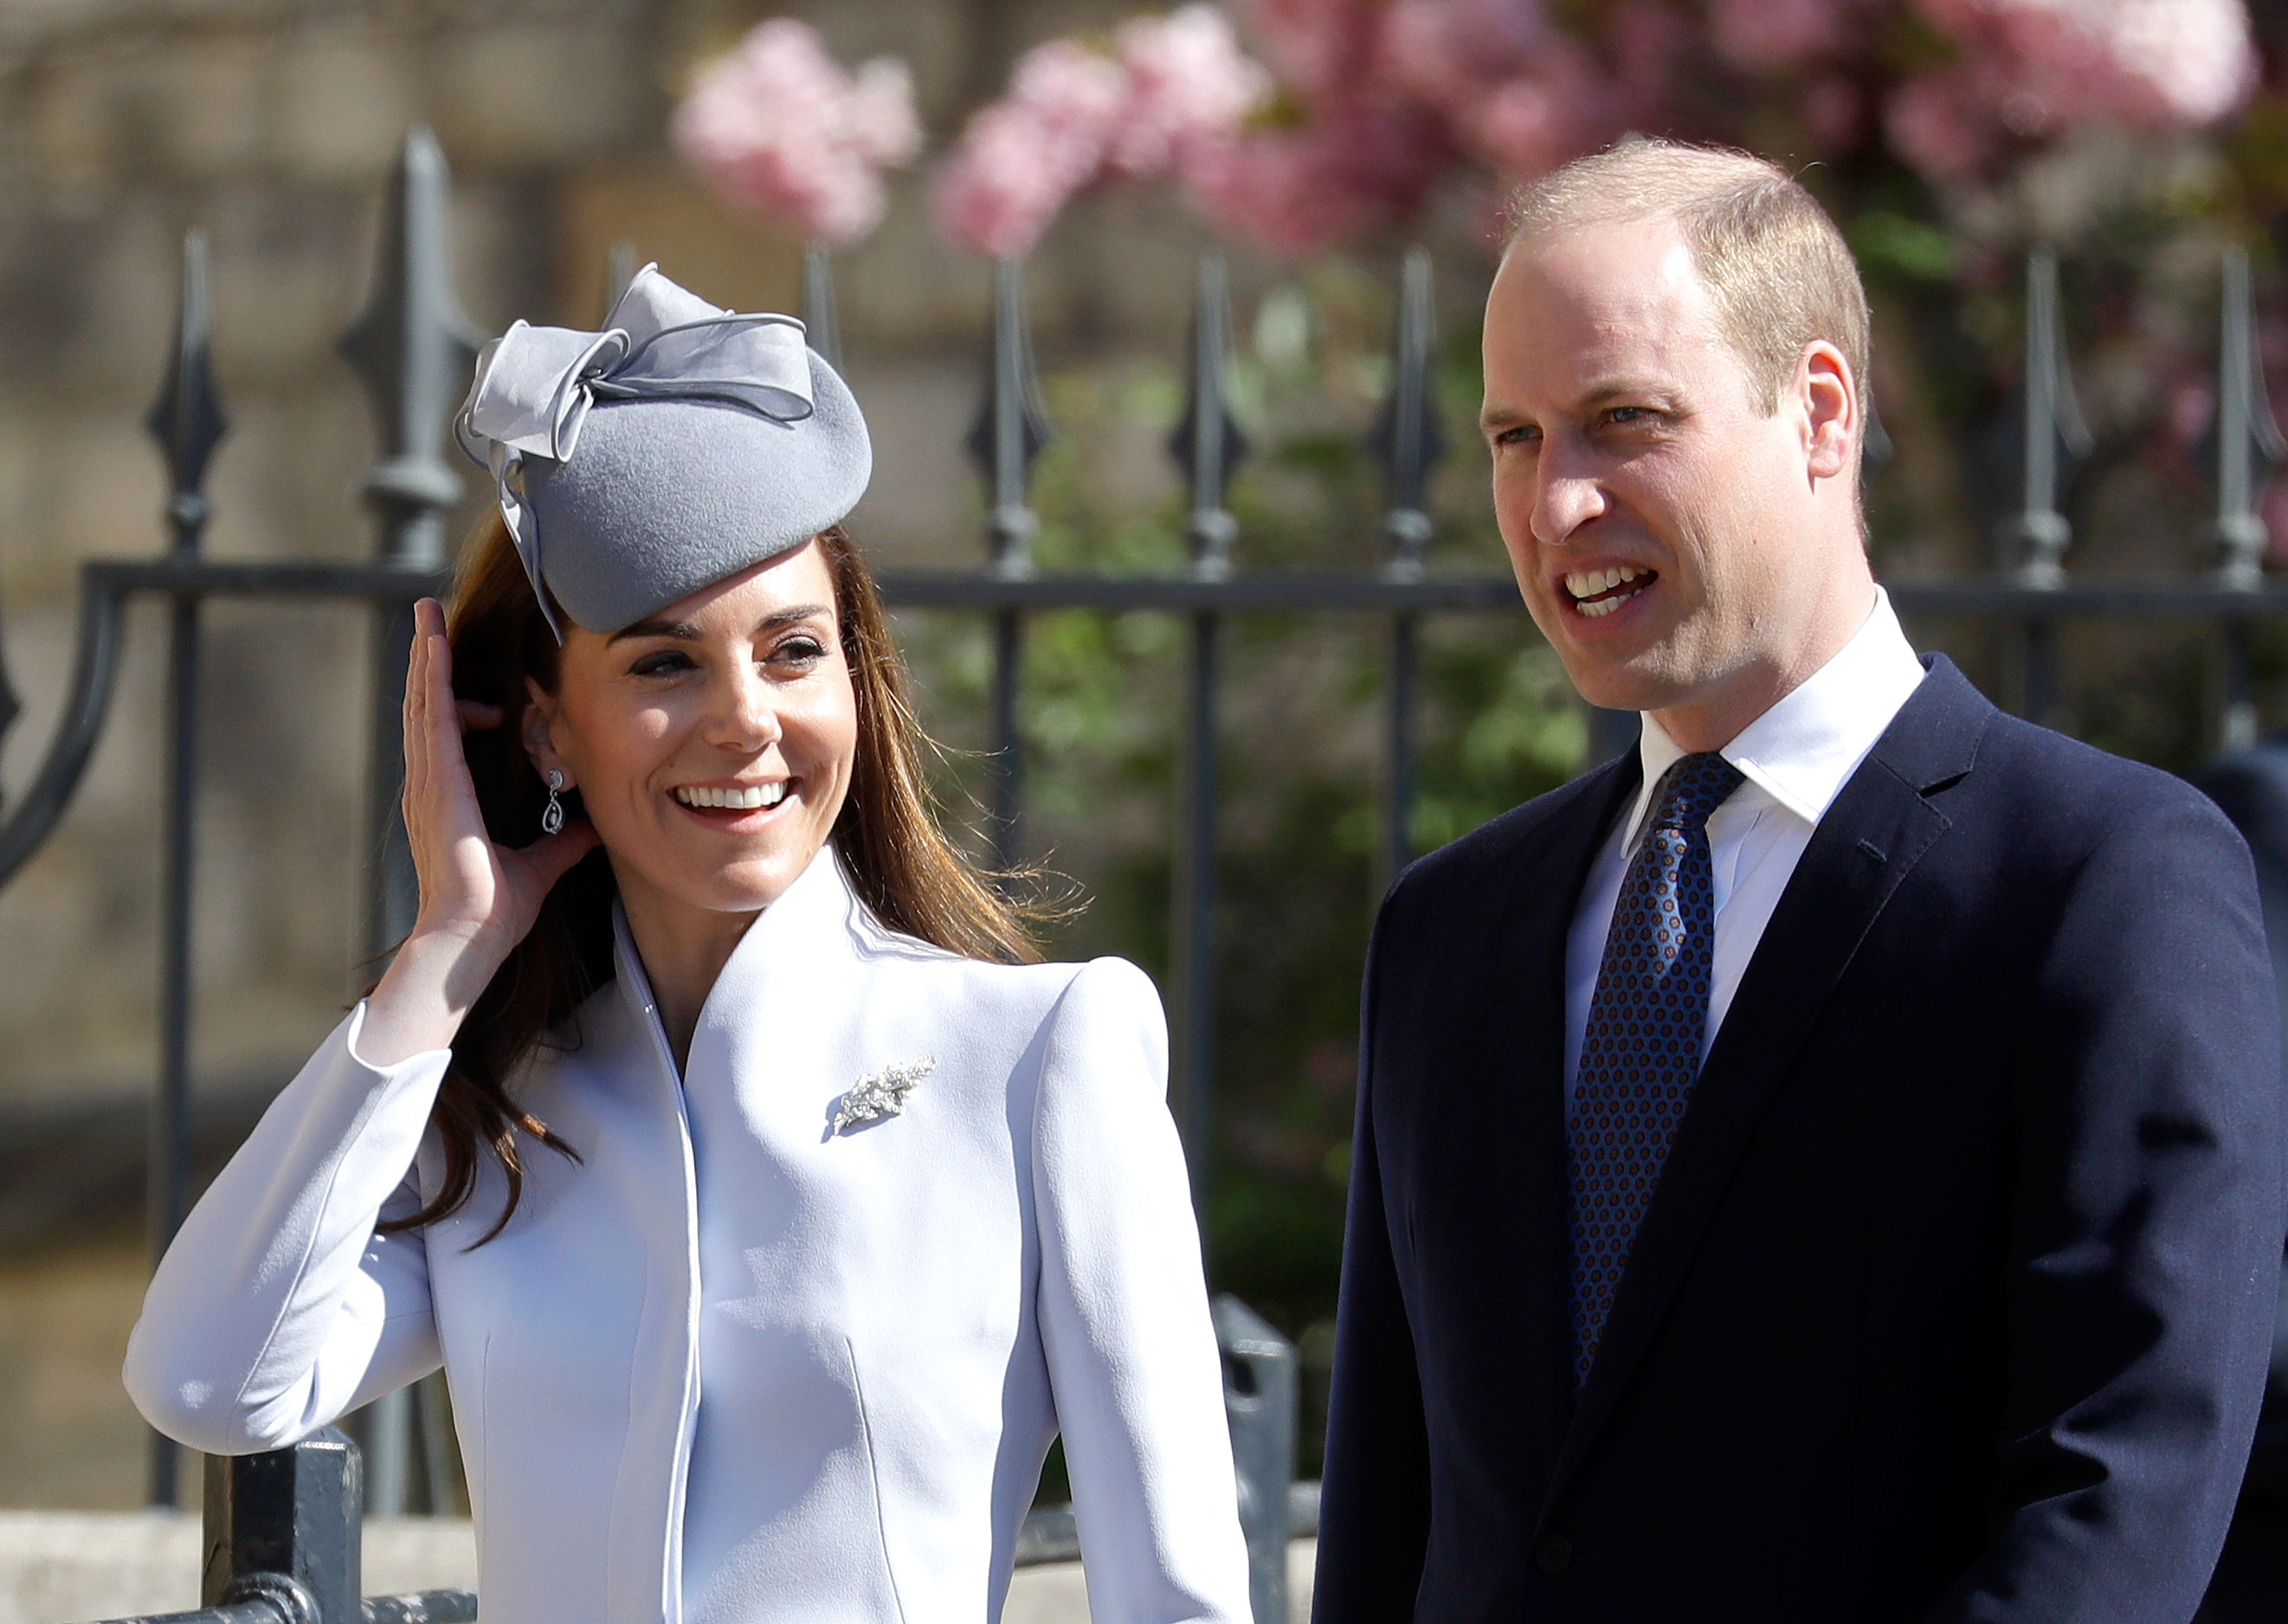 Prince William Kate Middleton Royal Family Celebrate Easter - Prince William, Duke of Cambridge and Catherine, Duchess of Cambridge attend Easter Sunday service at St George's Chapel on April 21, 2019 in Windsor, England.